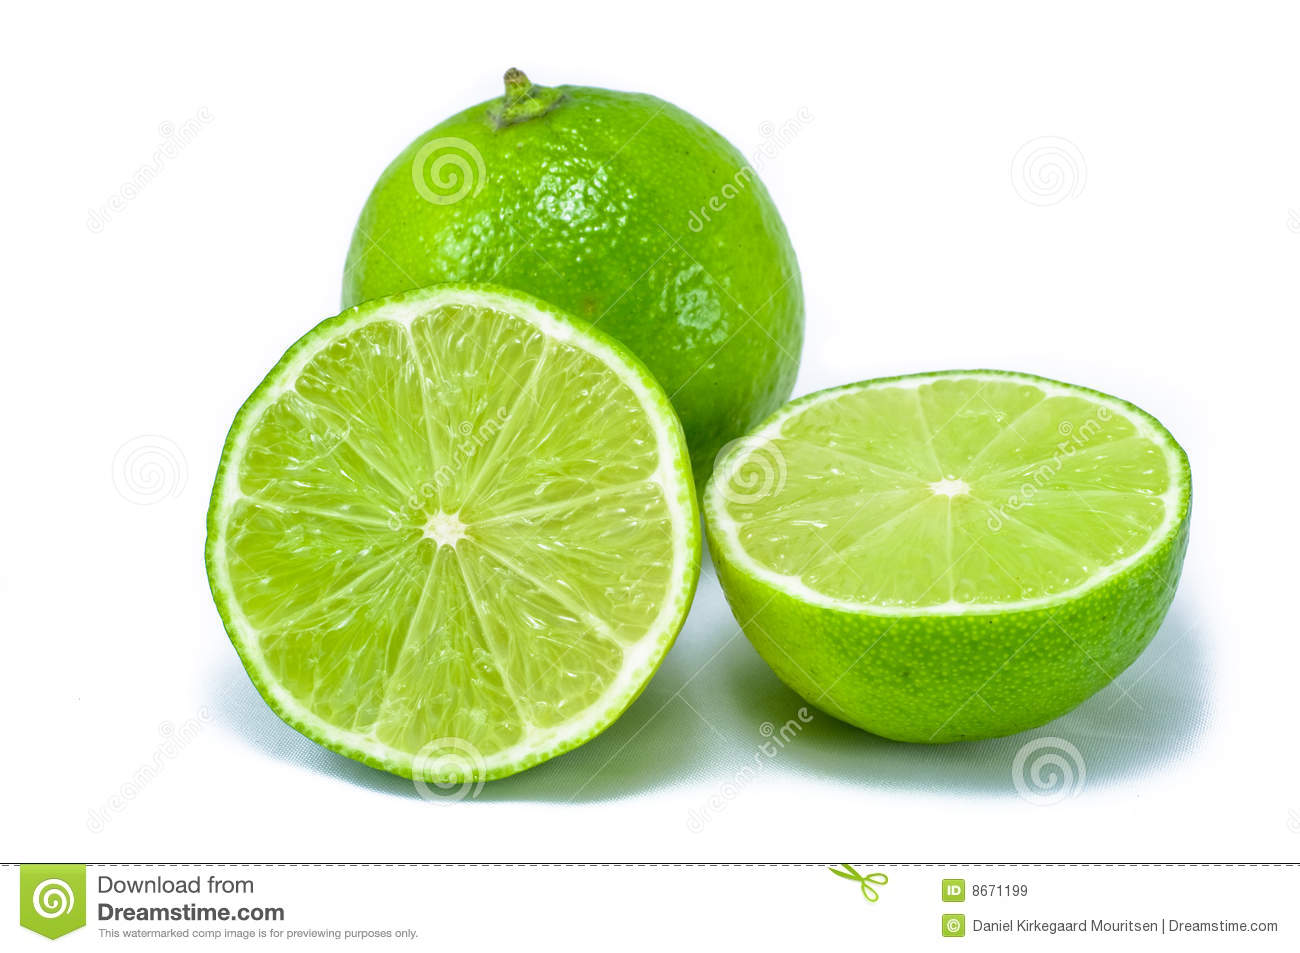 Two lime citrus fruit, one bisected, Isolated on a white background.